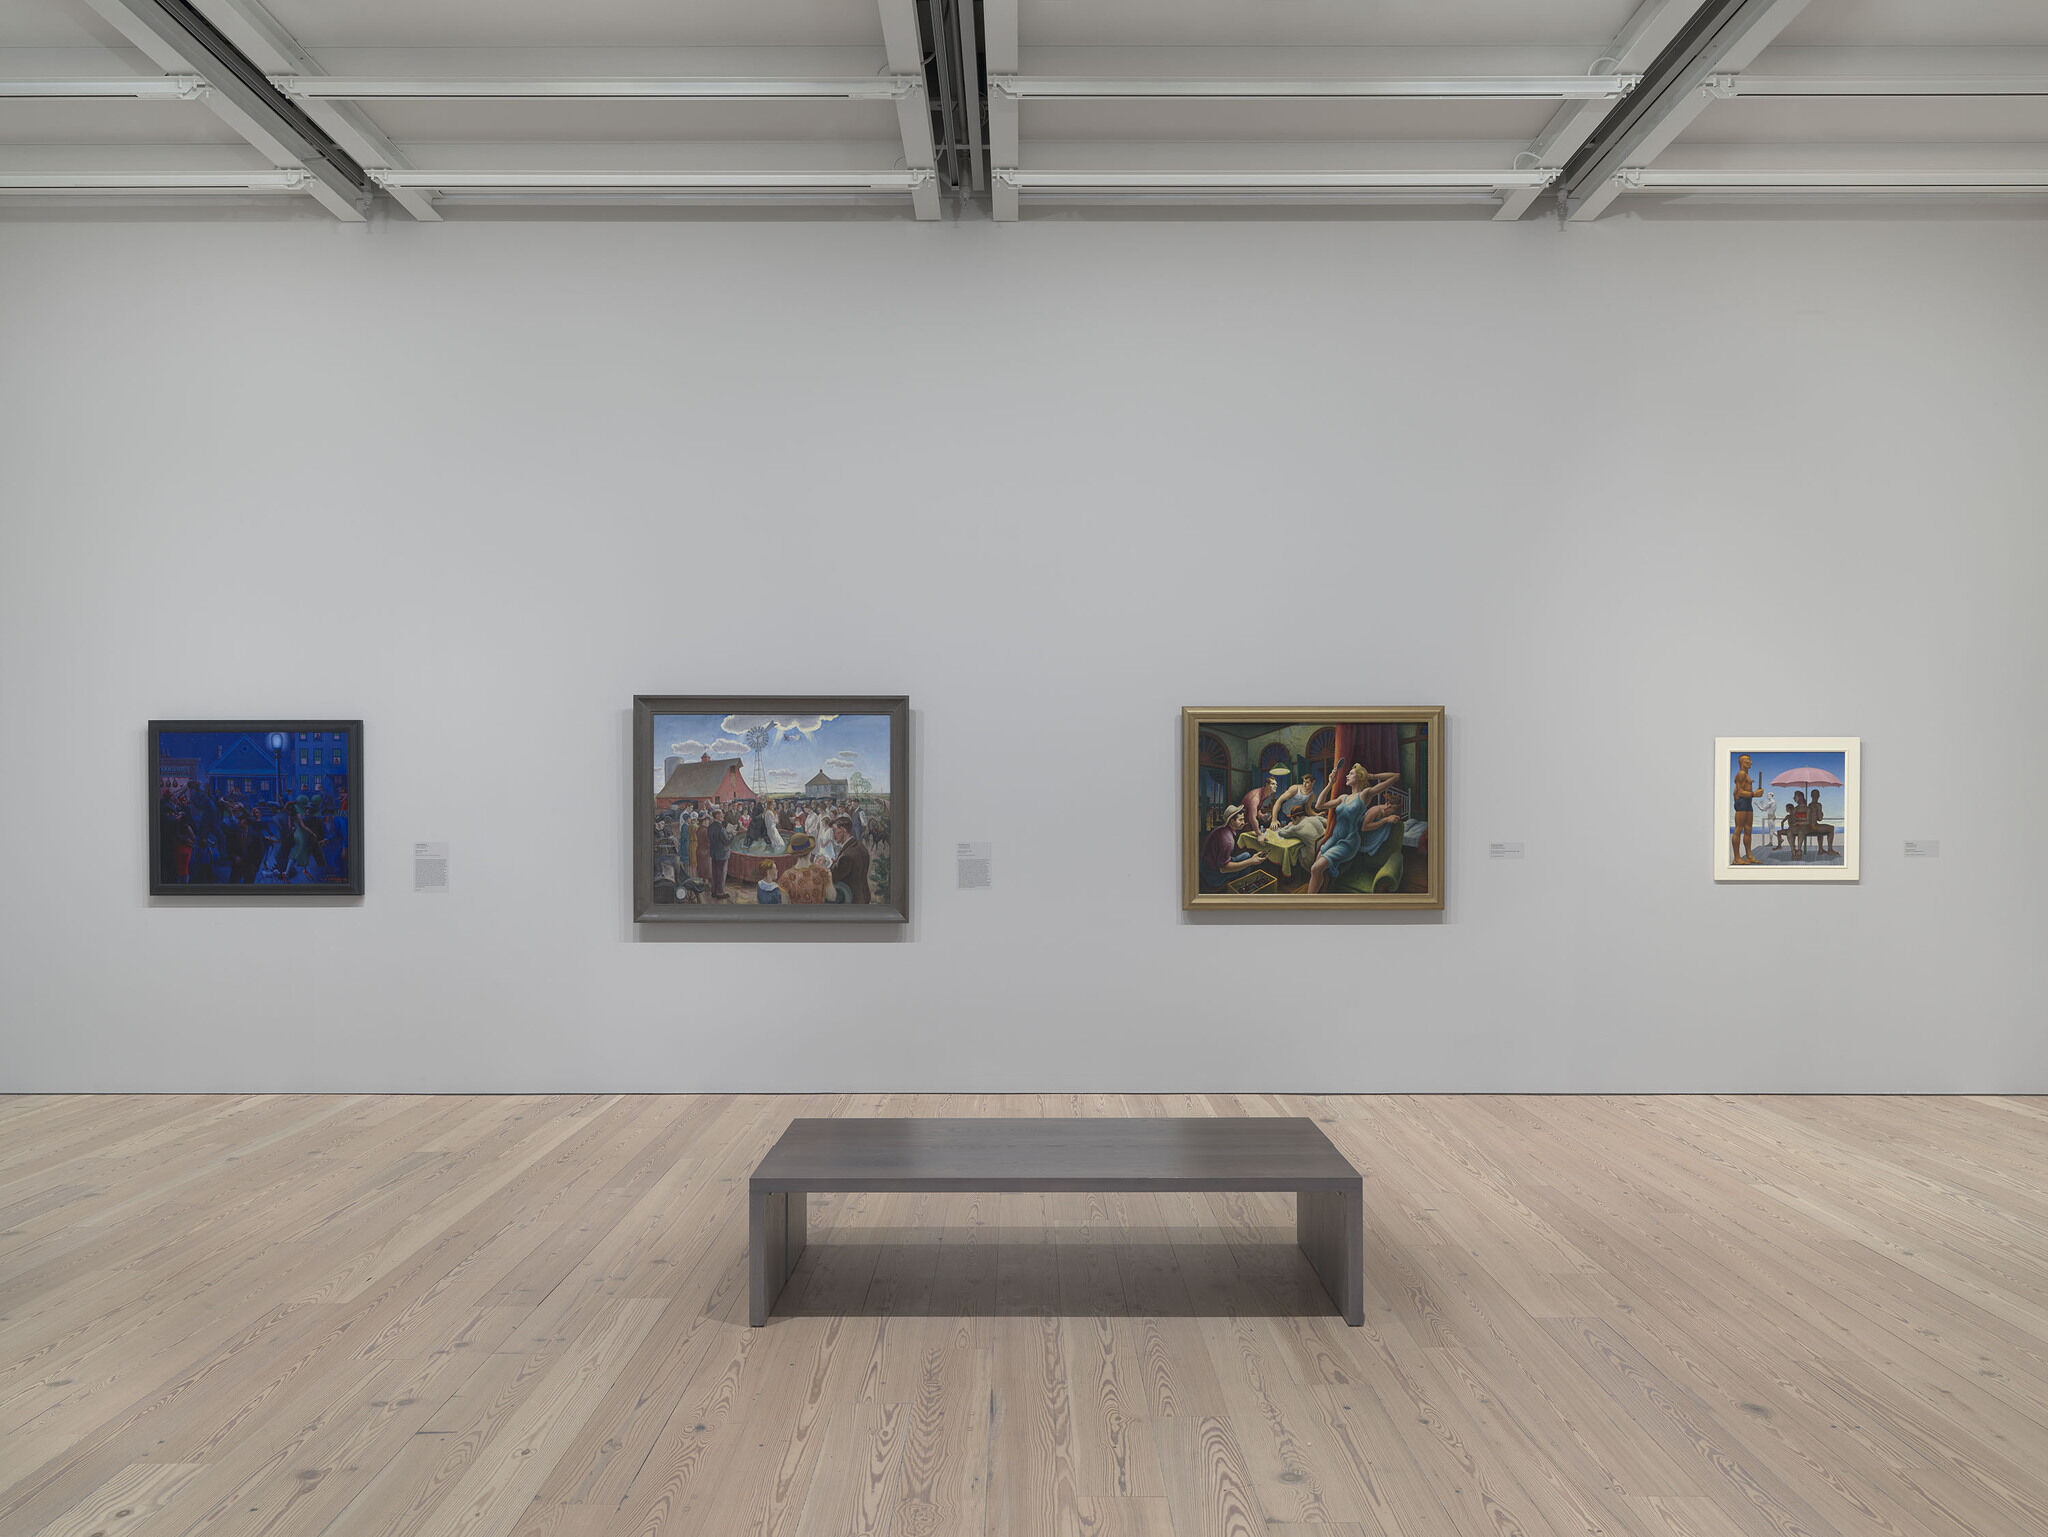 A gallery with a bench and art on the wall.